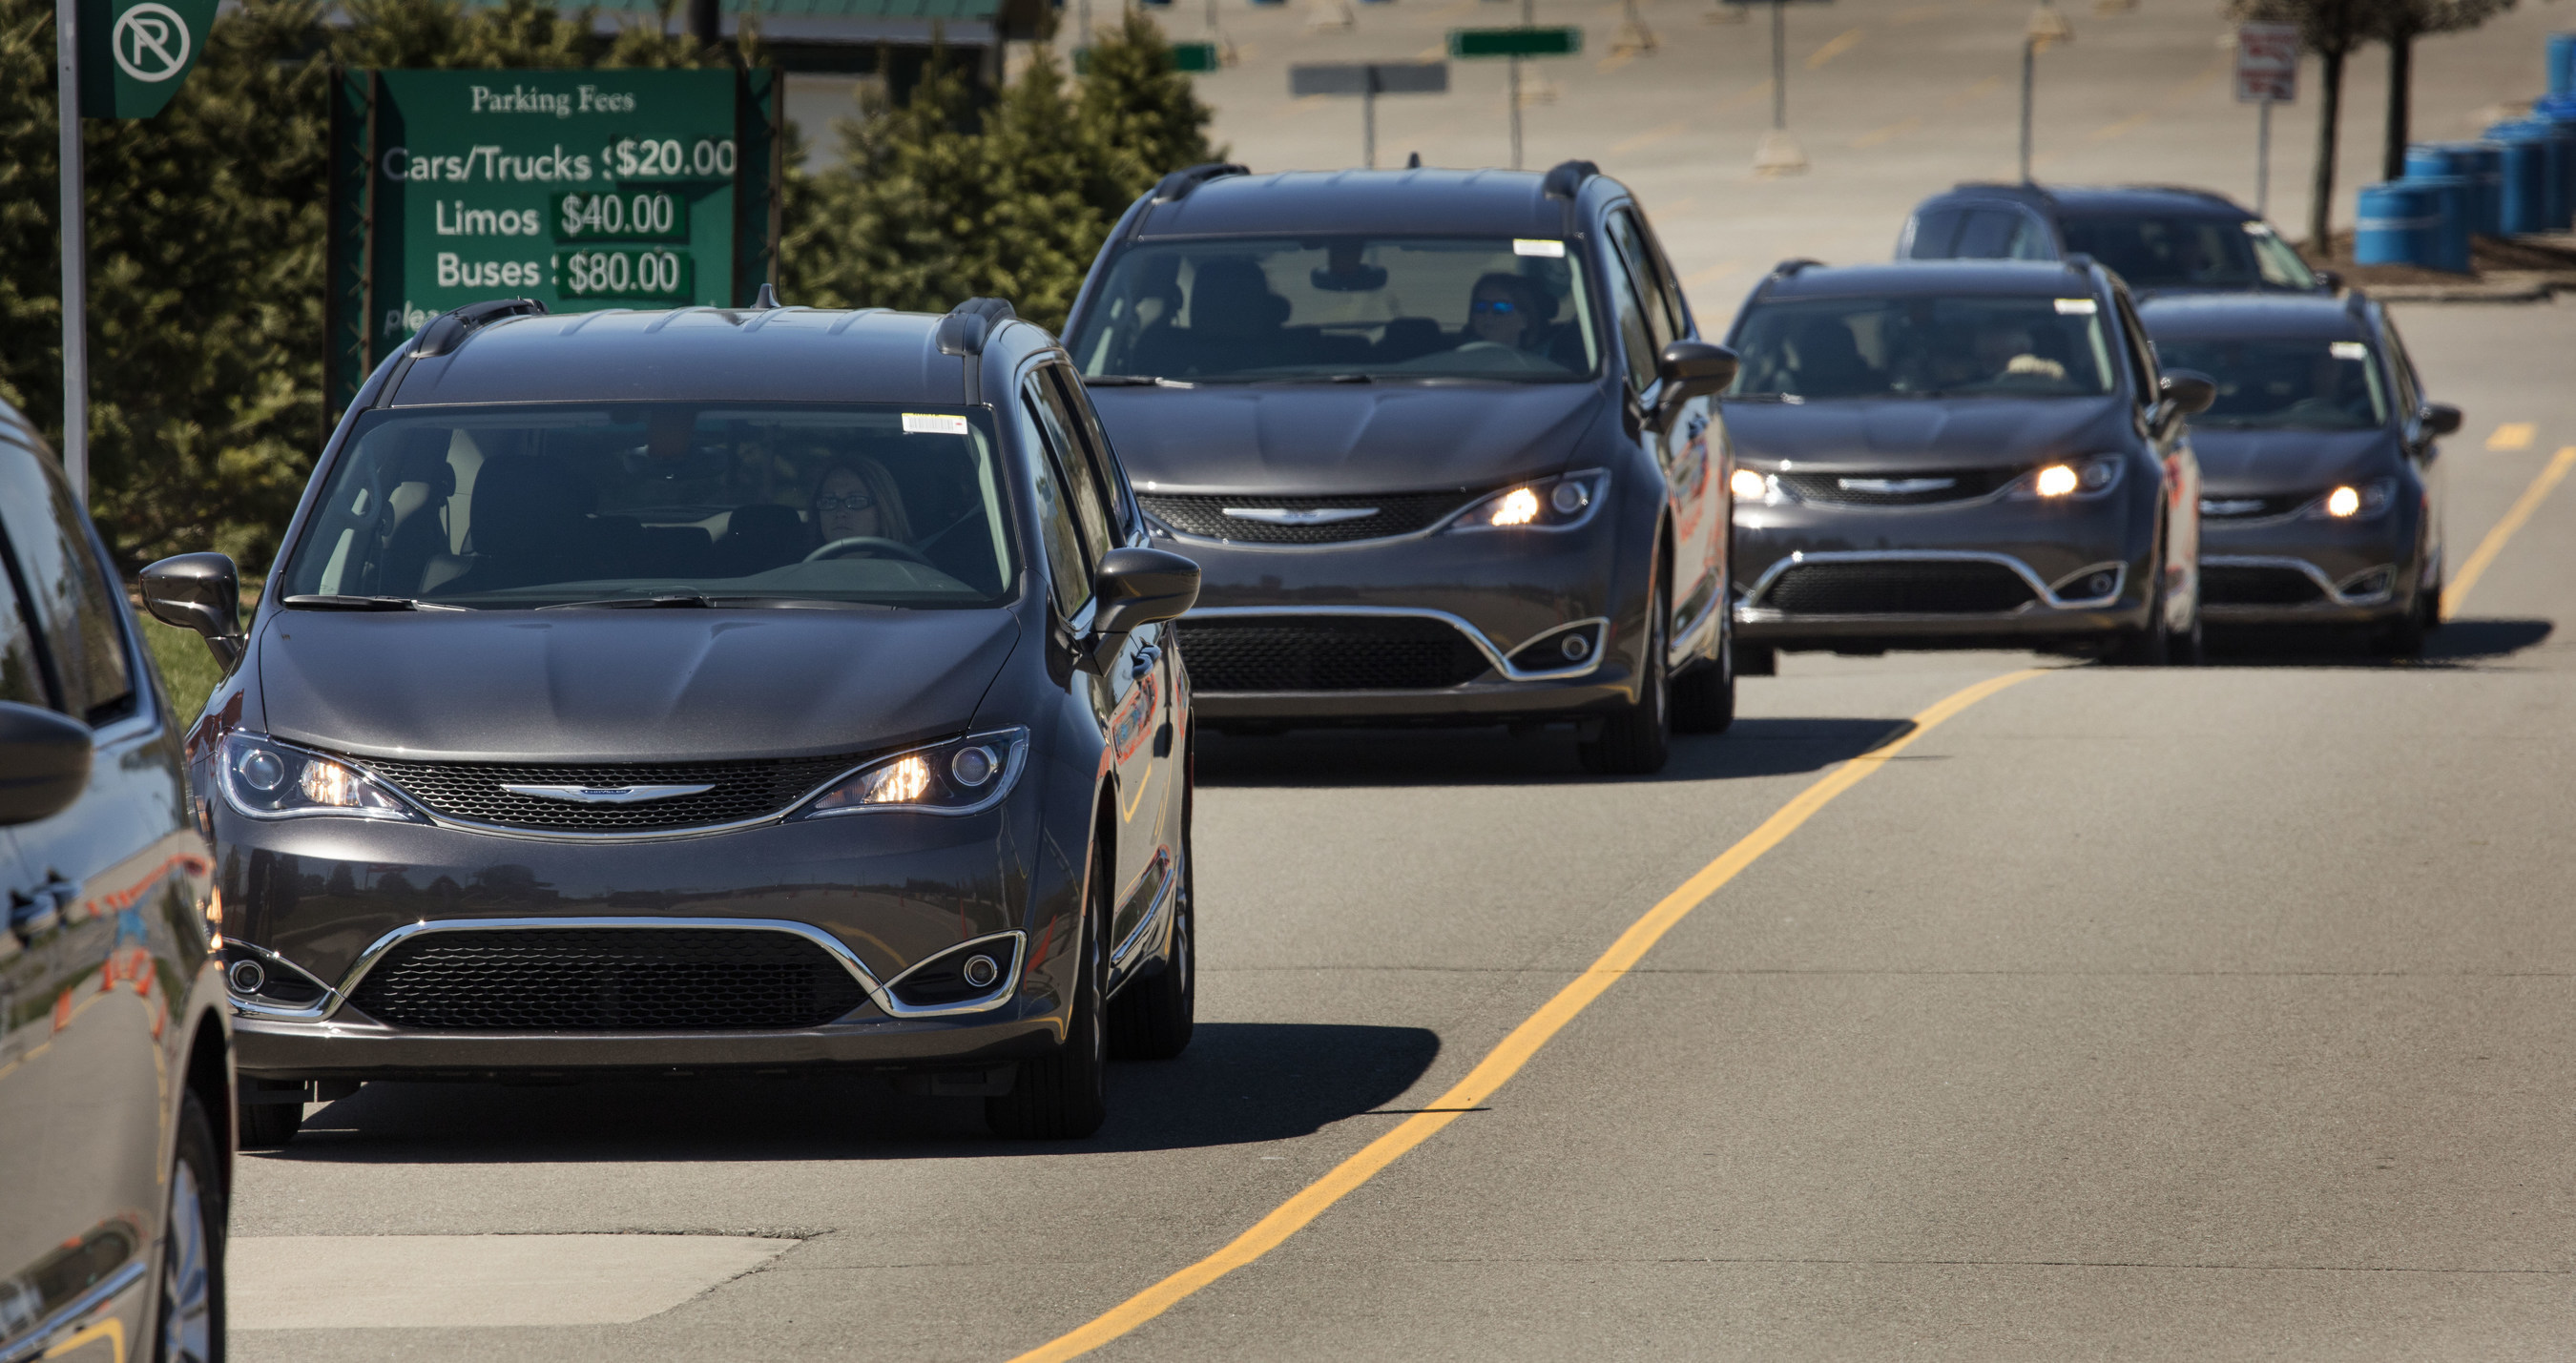 In the largest ever Drive Away hosted by FCA US, more than 200 all-new 2017 Chrysler Pacifica minivans were showcased side-by-side before making their way to dealerships across the Midwest.